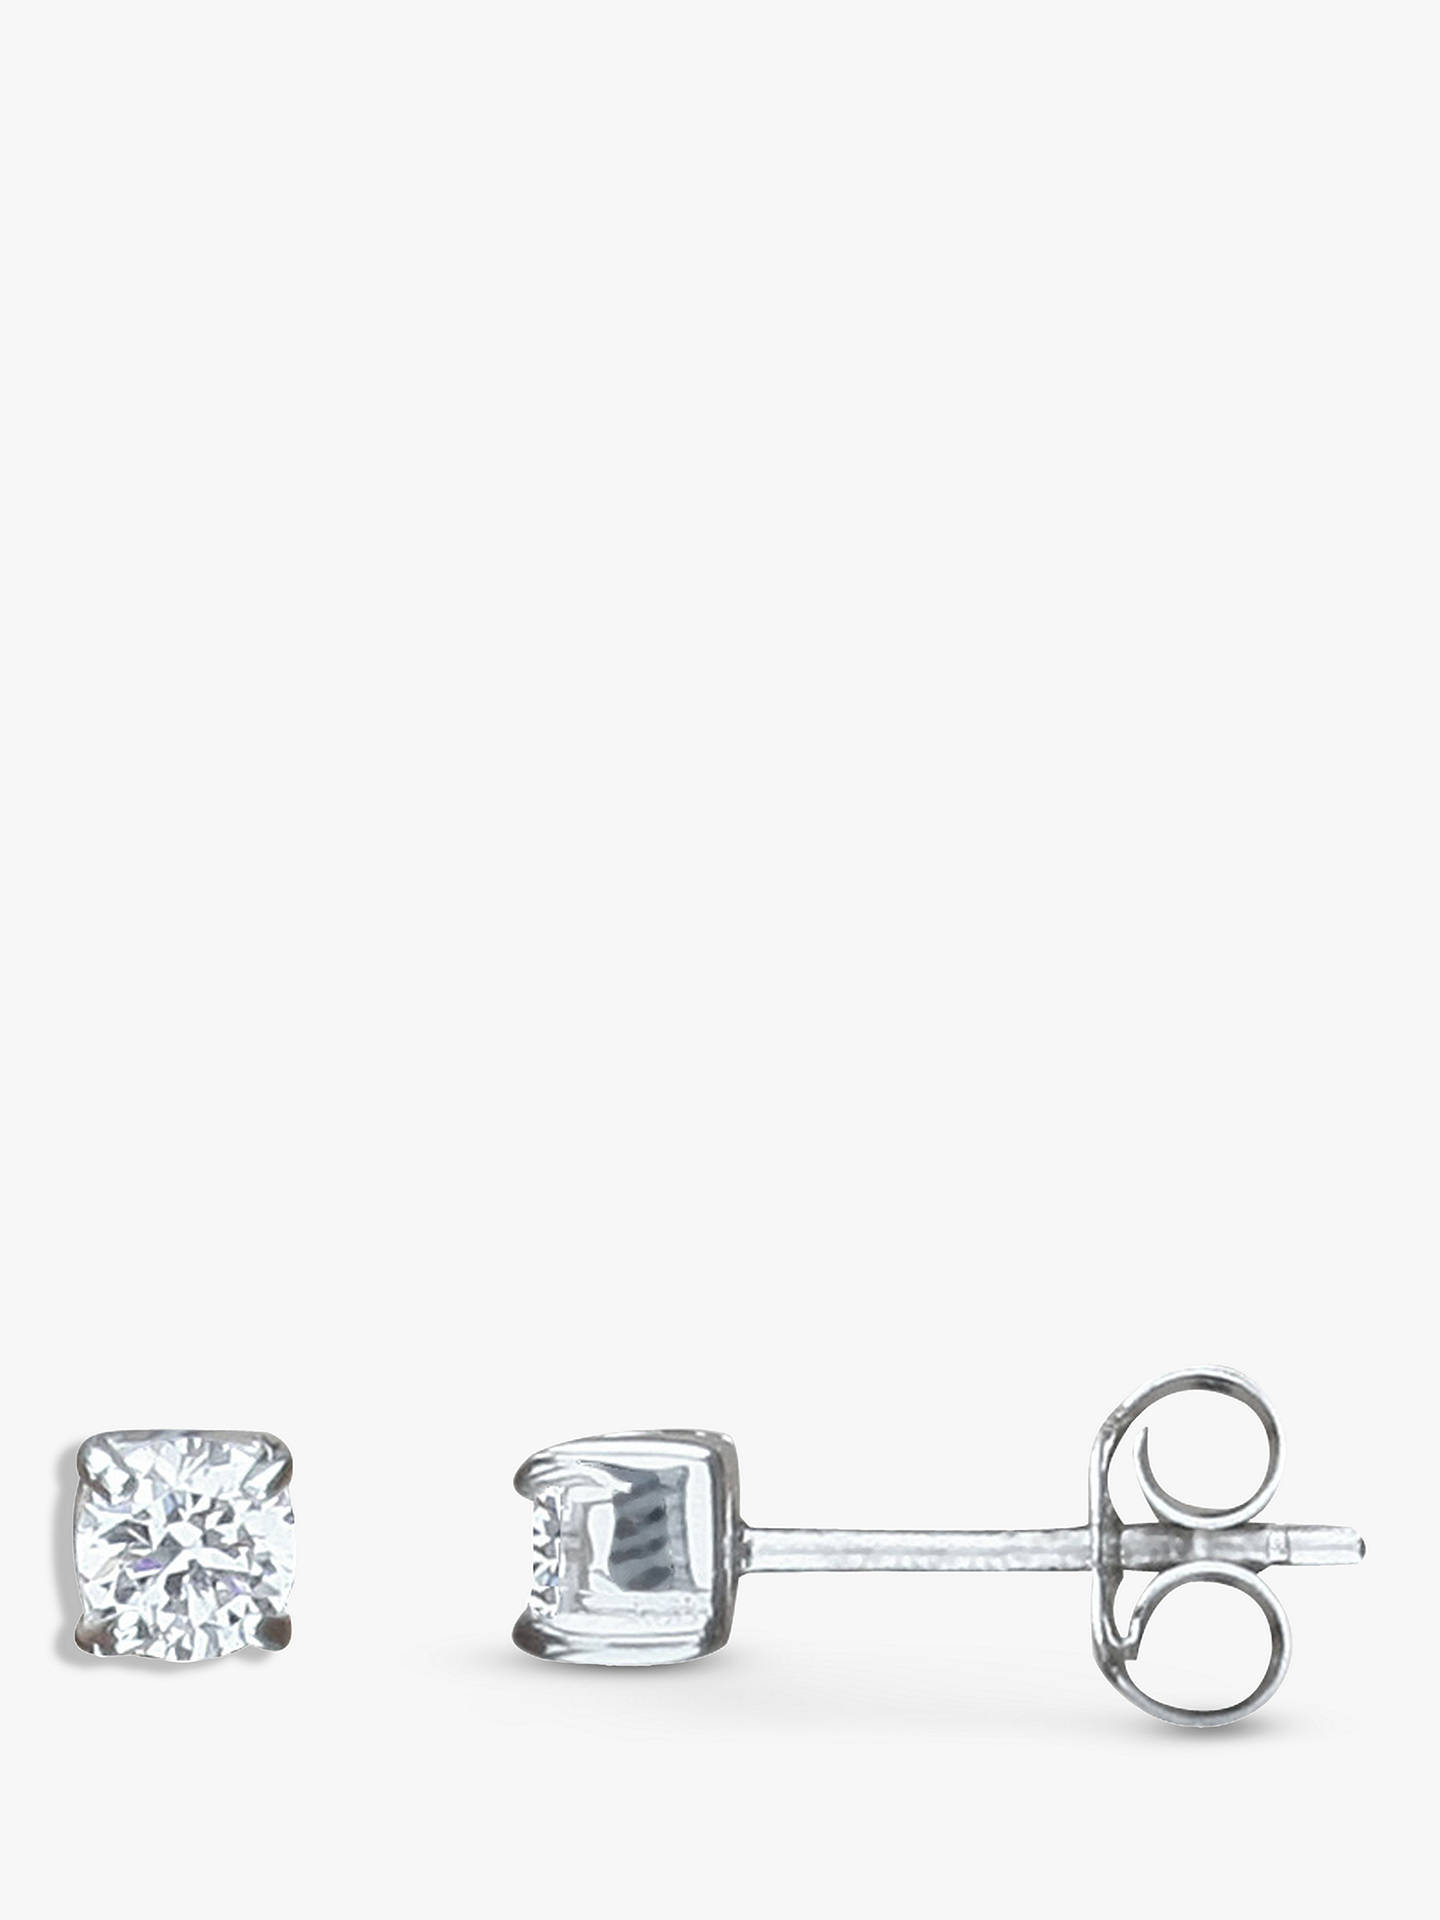 Nina B Claw Set Cubic Zirconia Stud Earrings, Silver by Nina B